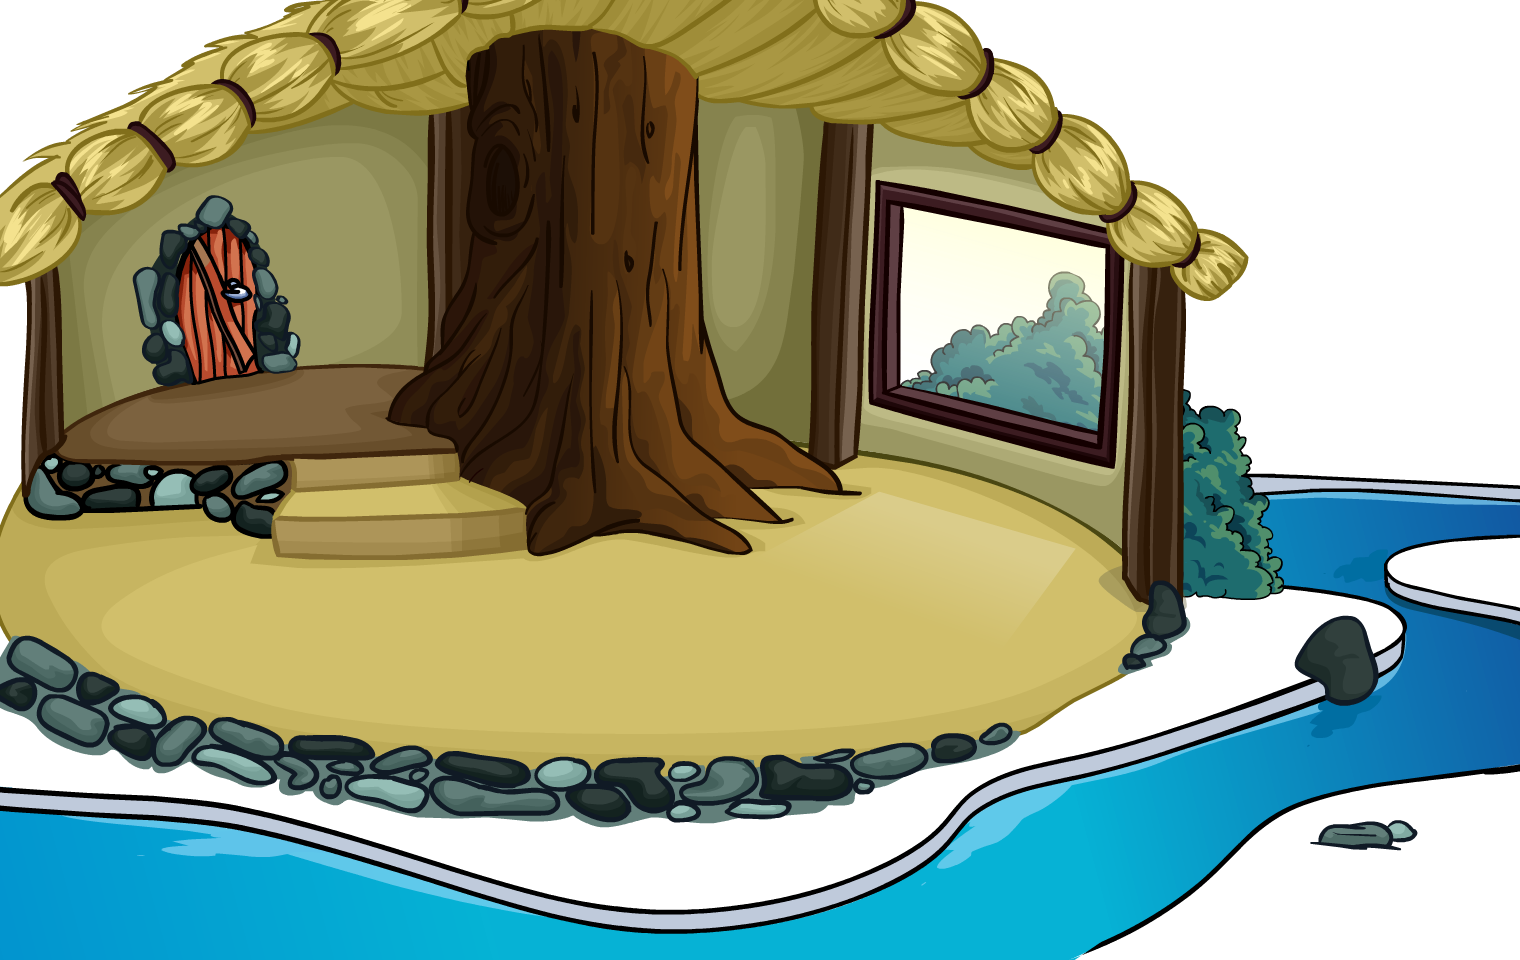 Cottage clipart cozy cottage. Igloo club penguin rewritten